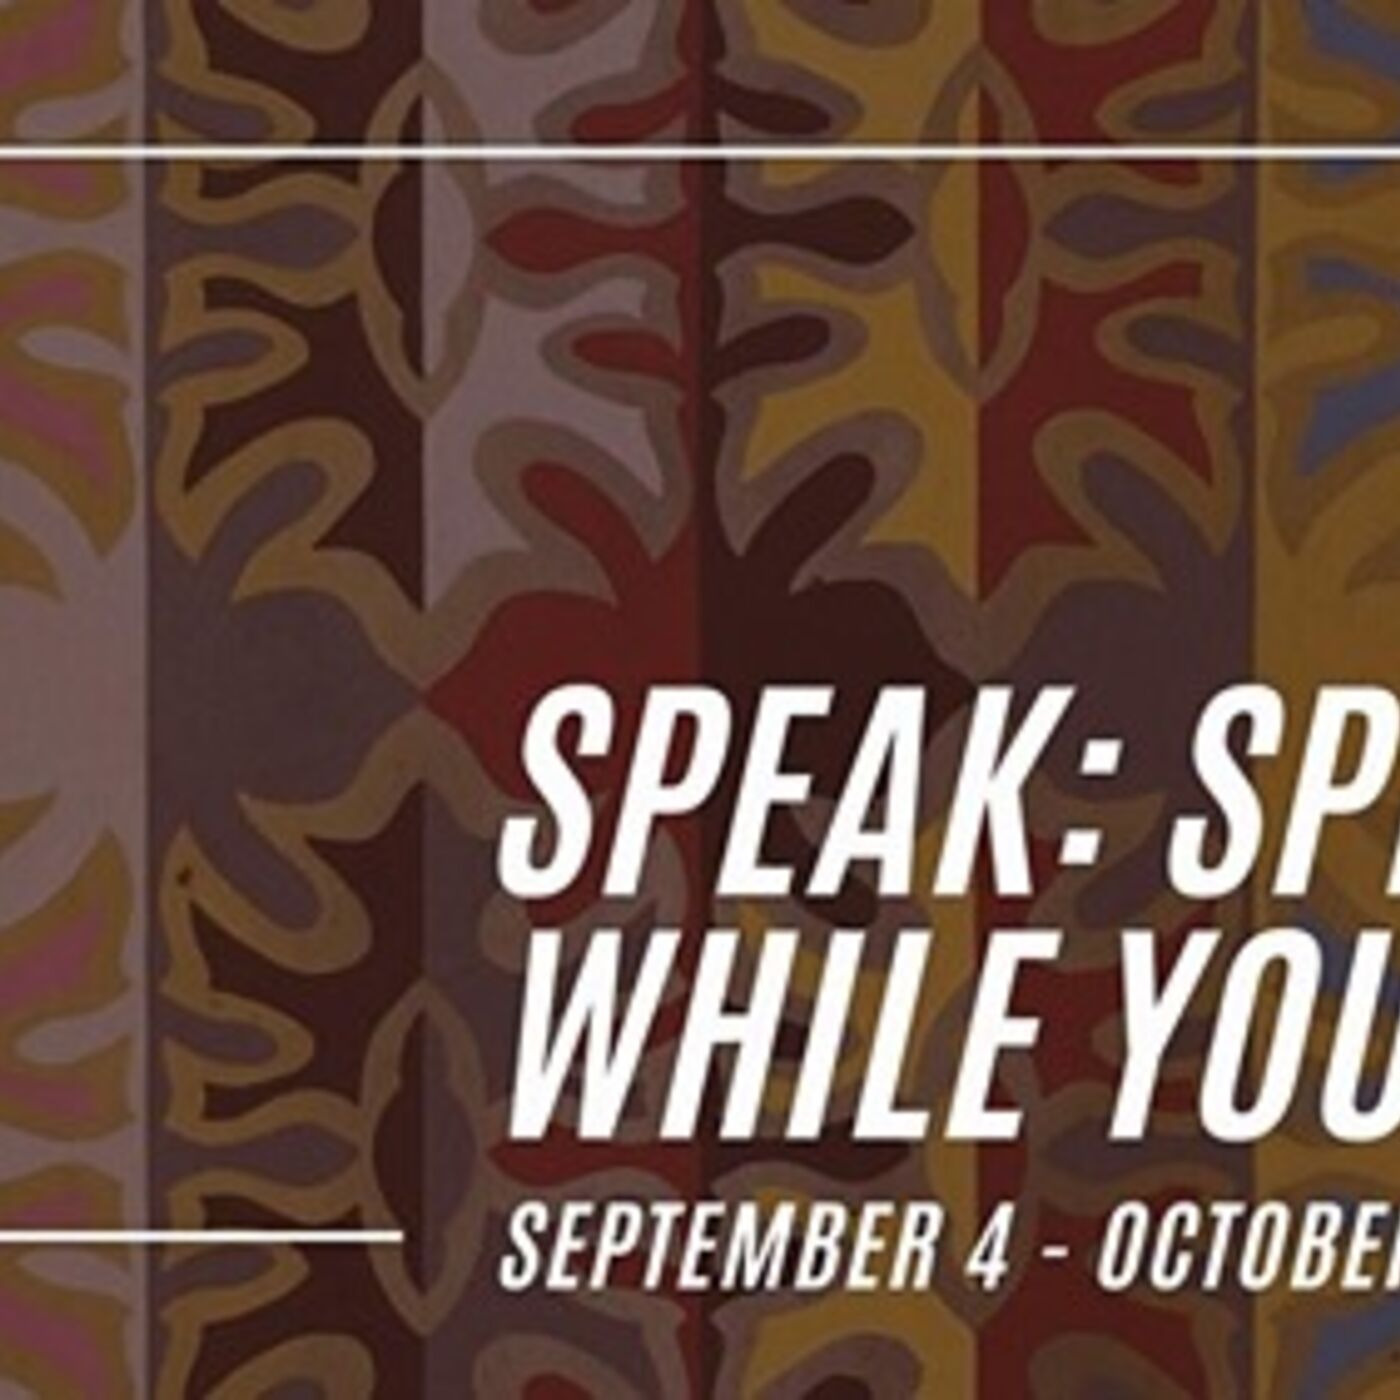 Living Arts of Tulsa Artist Panel For Speak: Speak While You Can Exhibit With Tony Tiger, Antonia Belindo, Joshua Hinson, and Randi Narcomey-Watson--Video Available On Inspiring Conversations Podcast Channel On Youtube-Link Below